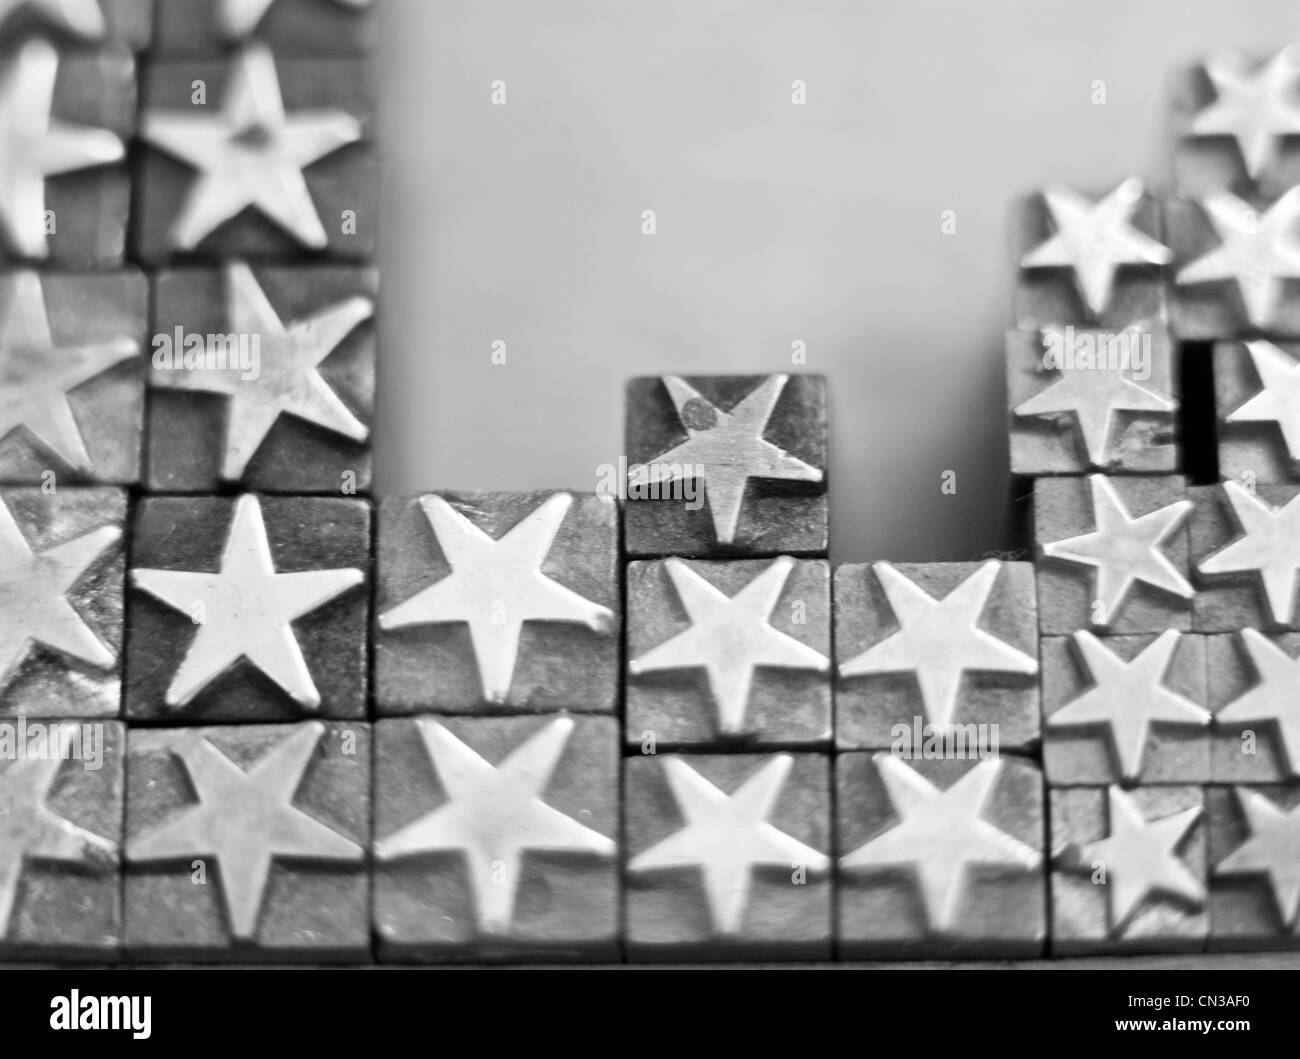 Star shaped rubber stamps - Stock Image